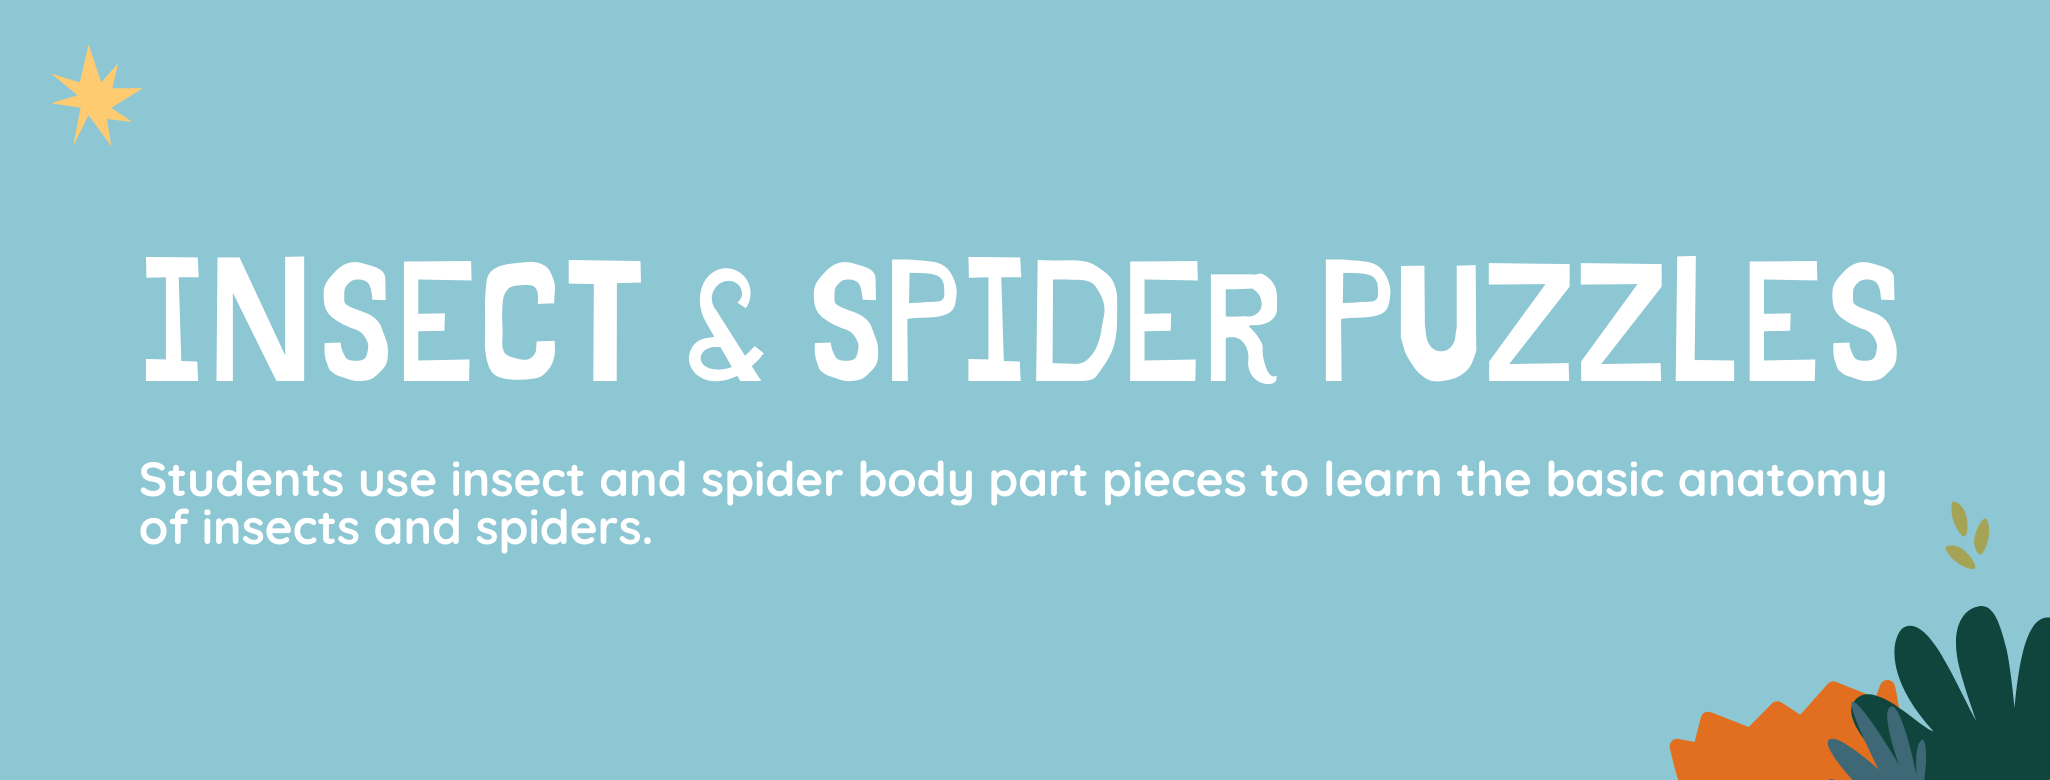 Insect & Spider Puzzles